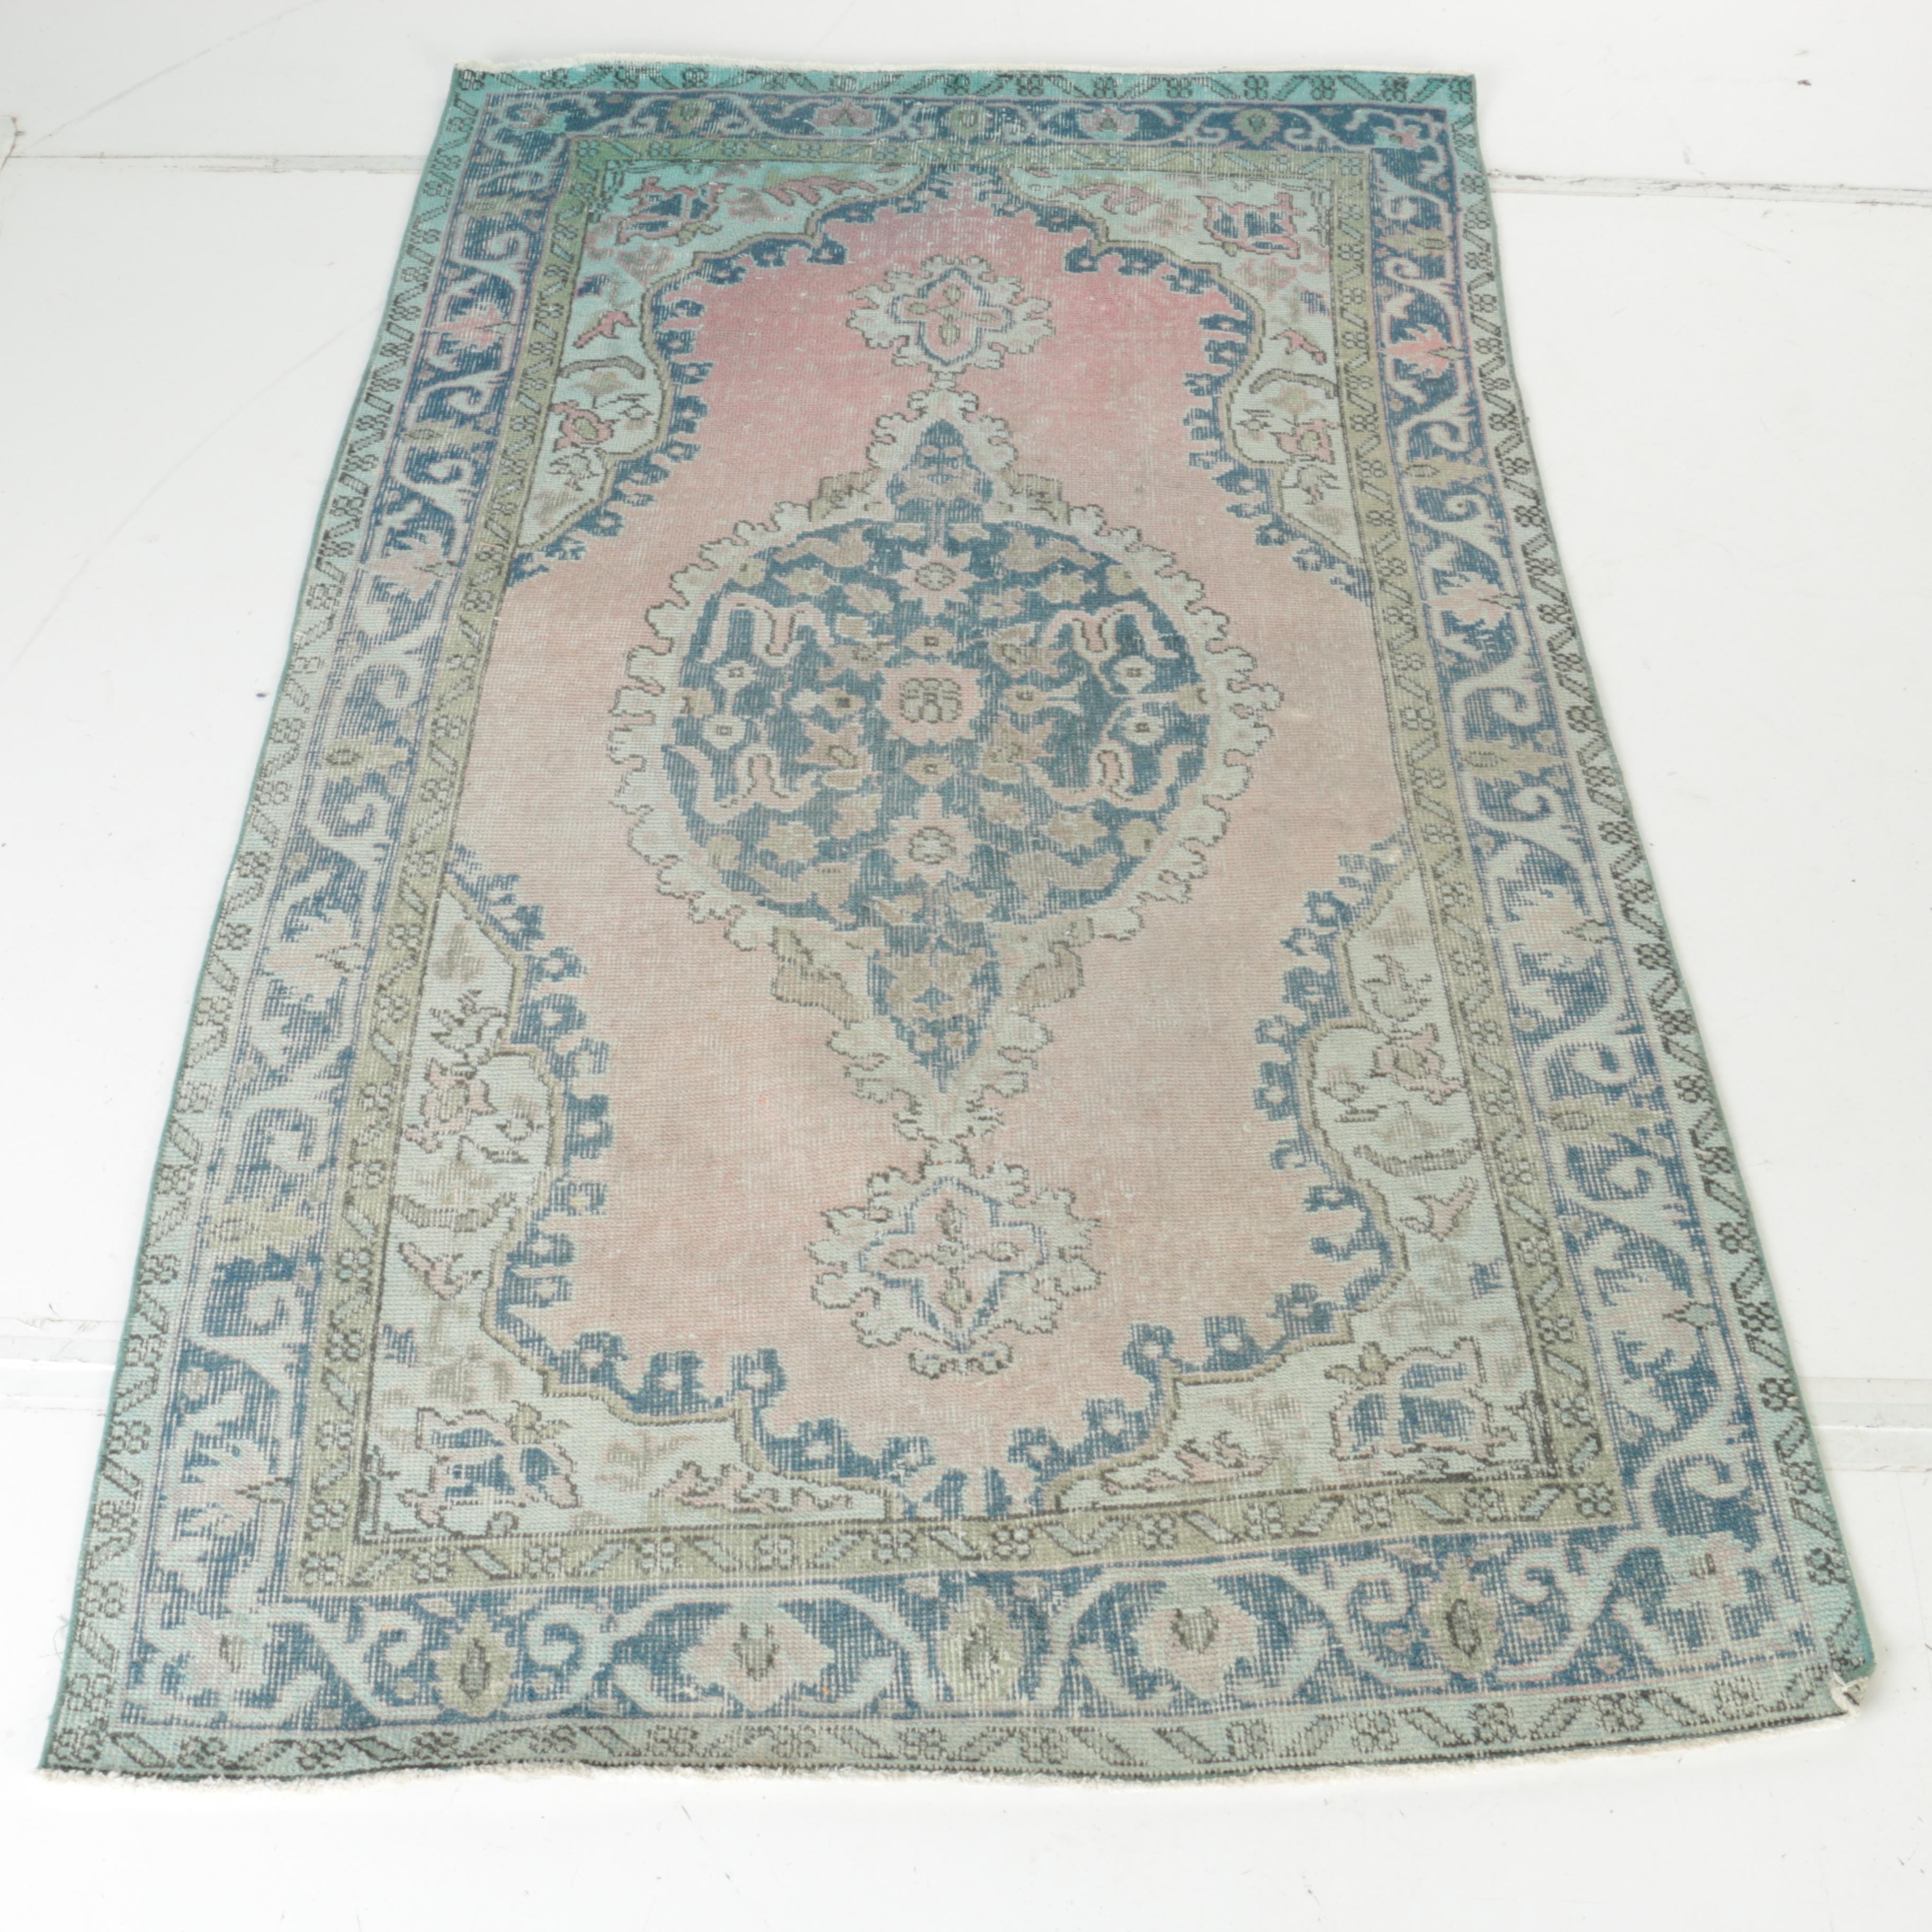 Hand-Knotted Overdyed Persian Wool Area Rug